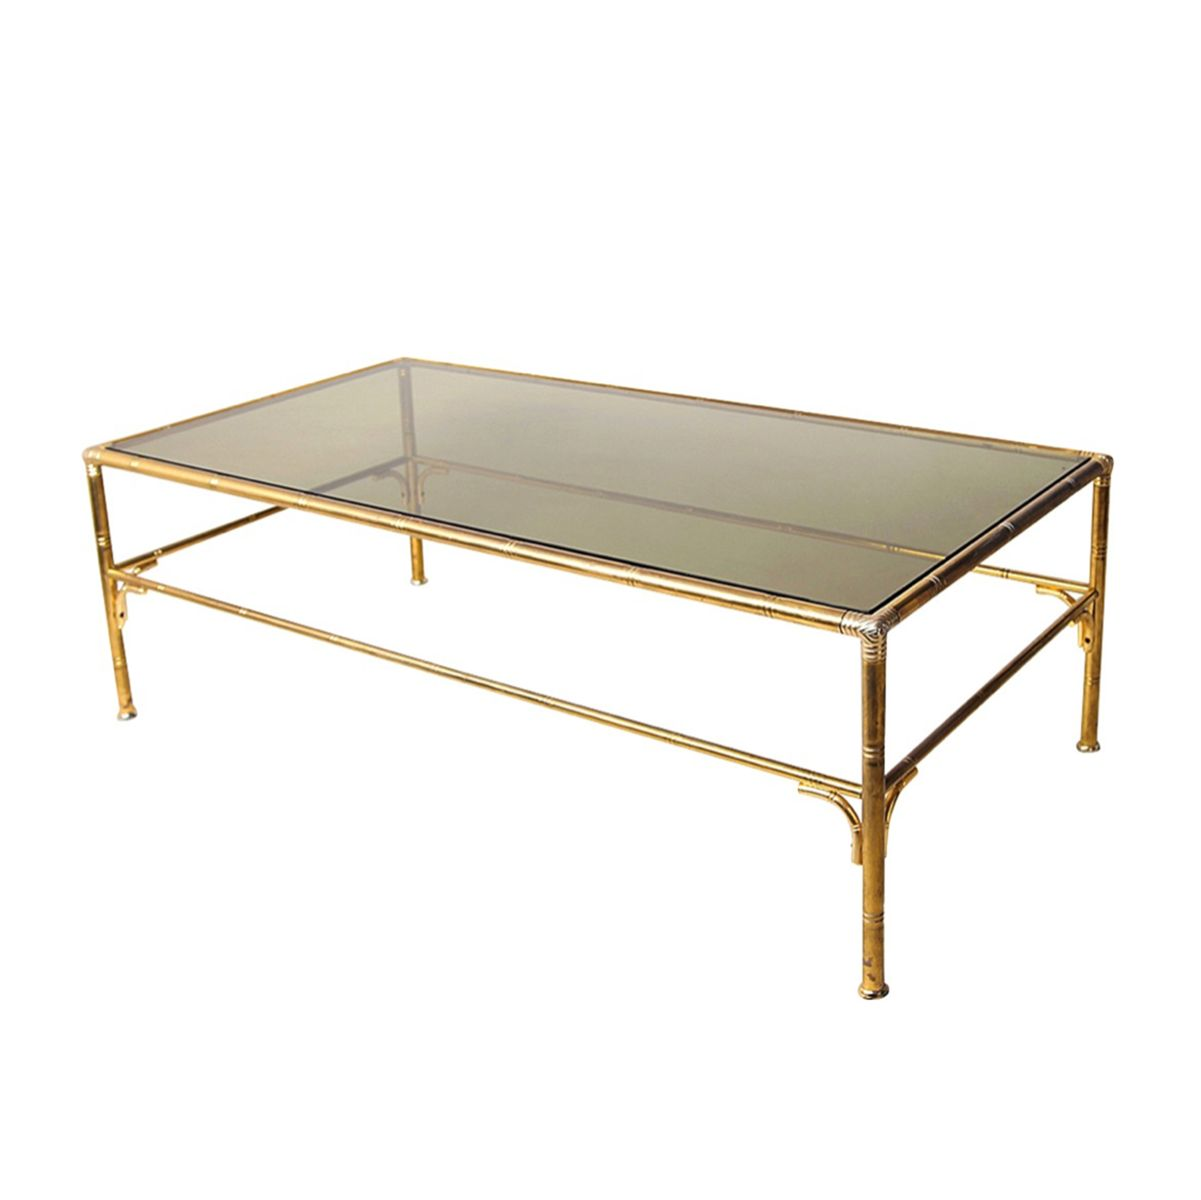 Brass Faux Bamboo Coffee Table: Vintage Brass Faux Bamboo Coffee Table For Sale At Pamono